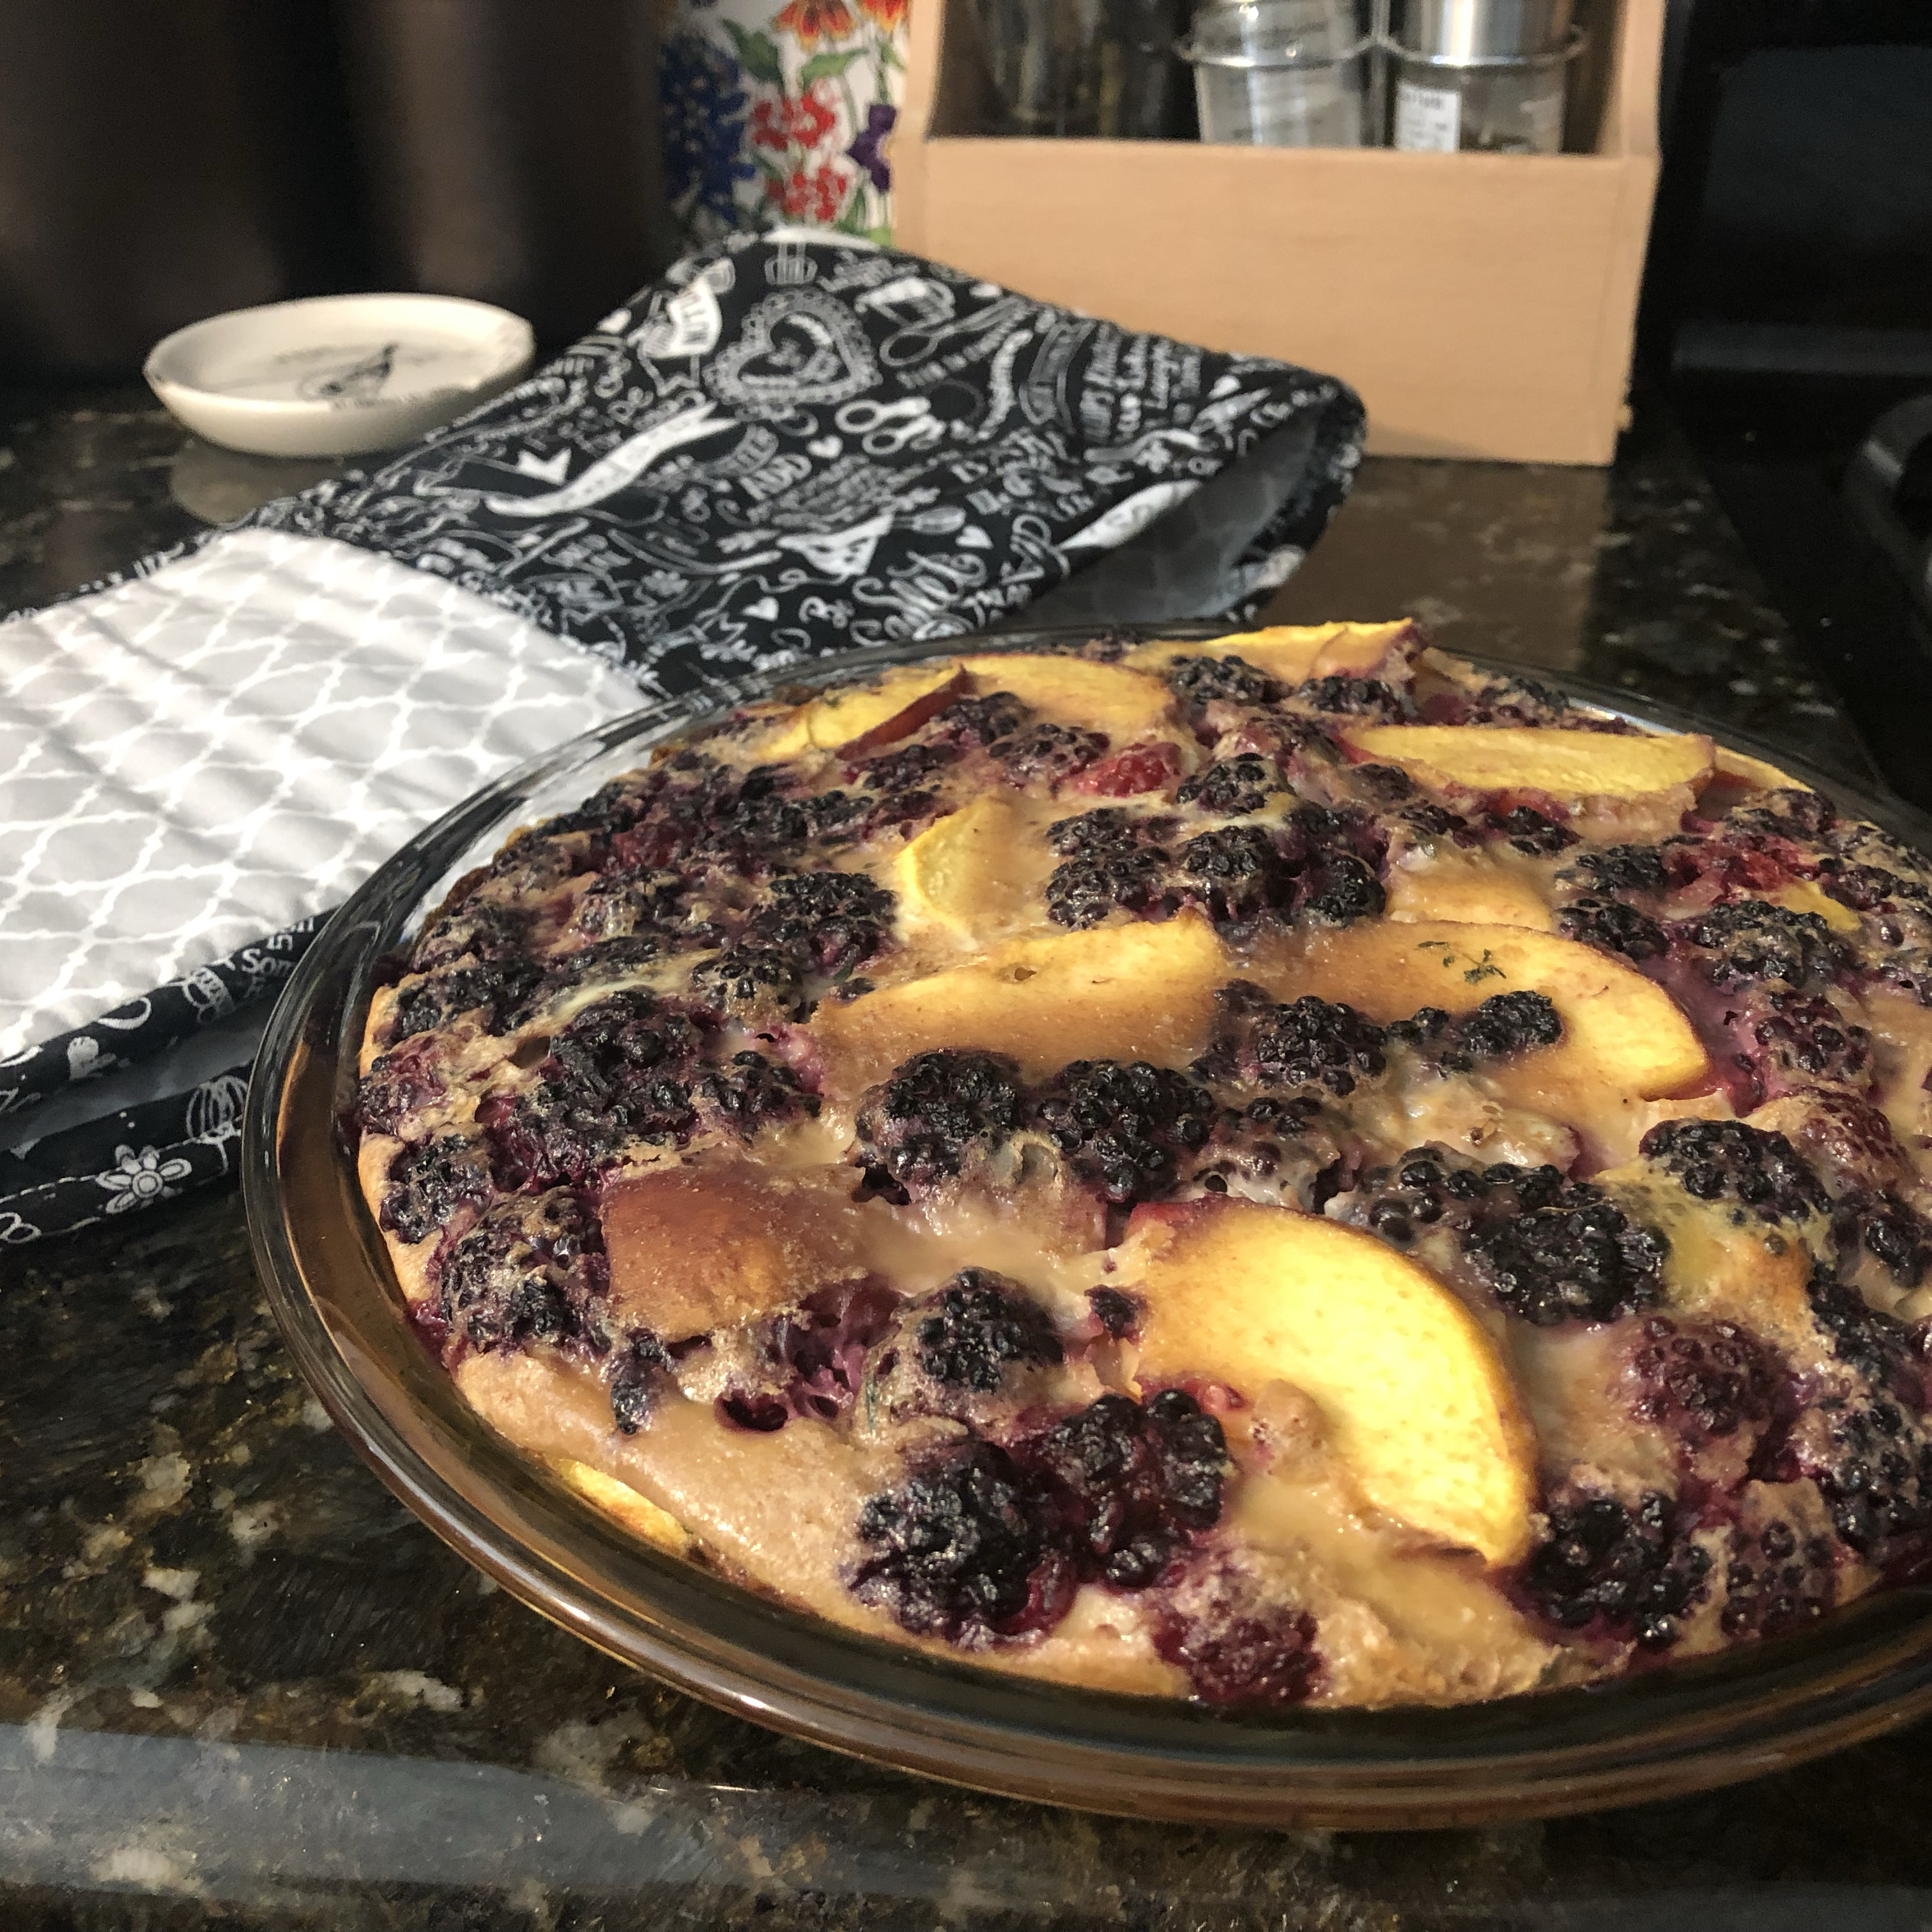 Chef John's Peach Blackberry Flognarde yummy